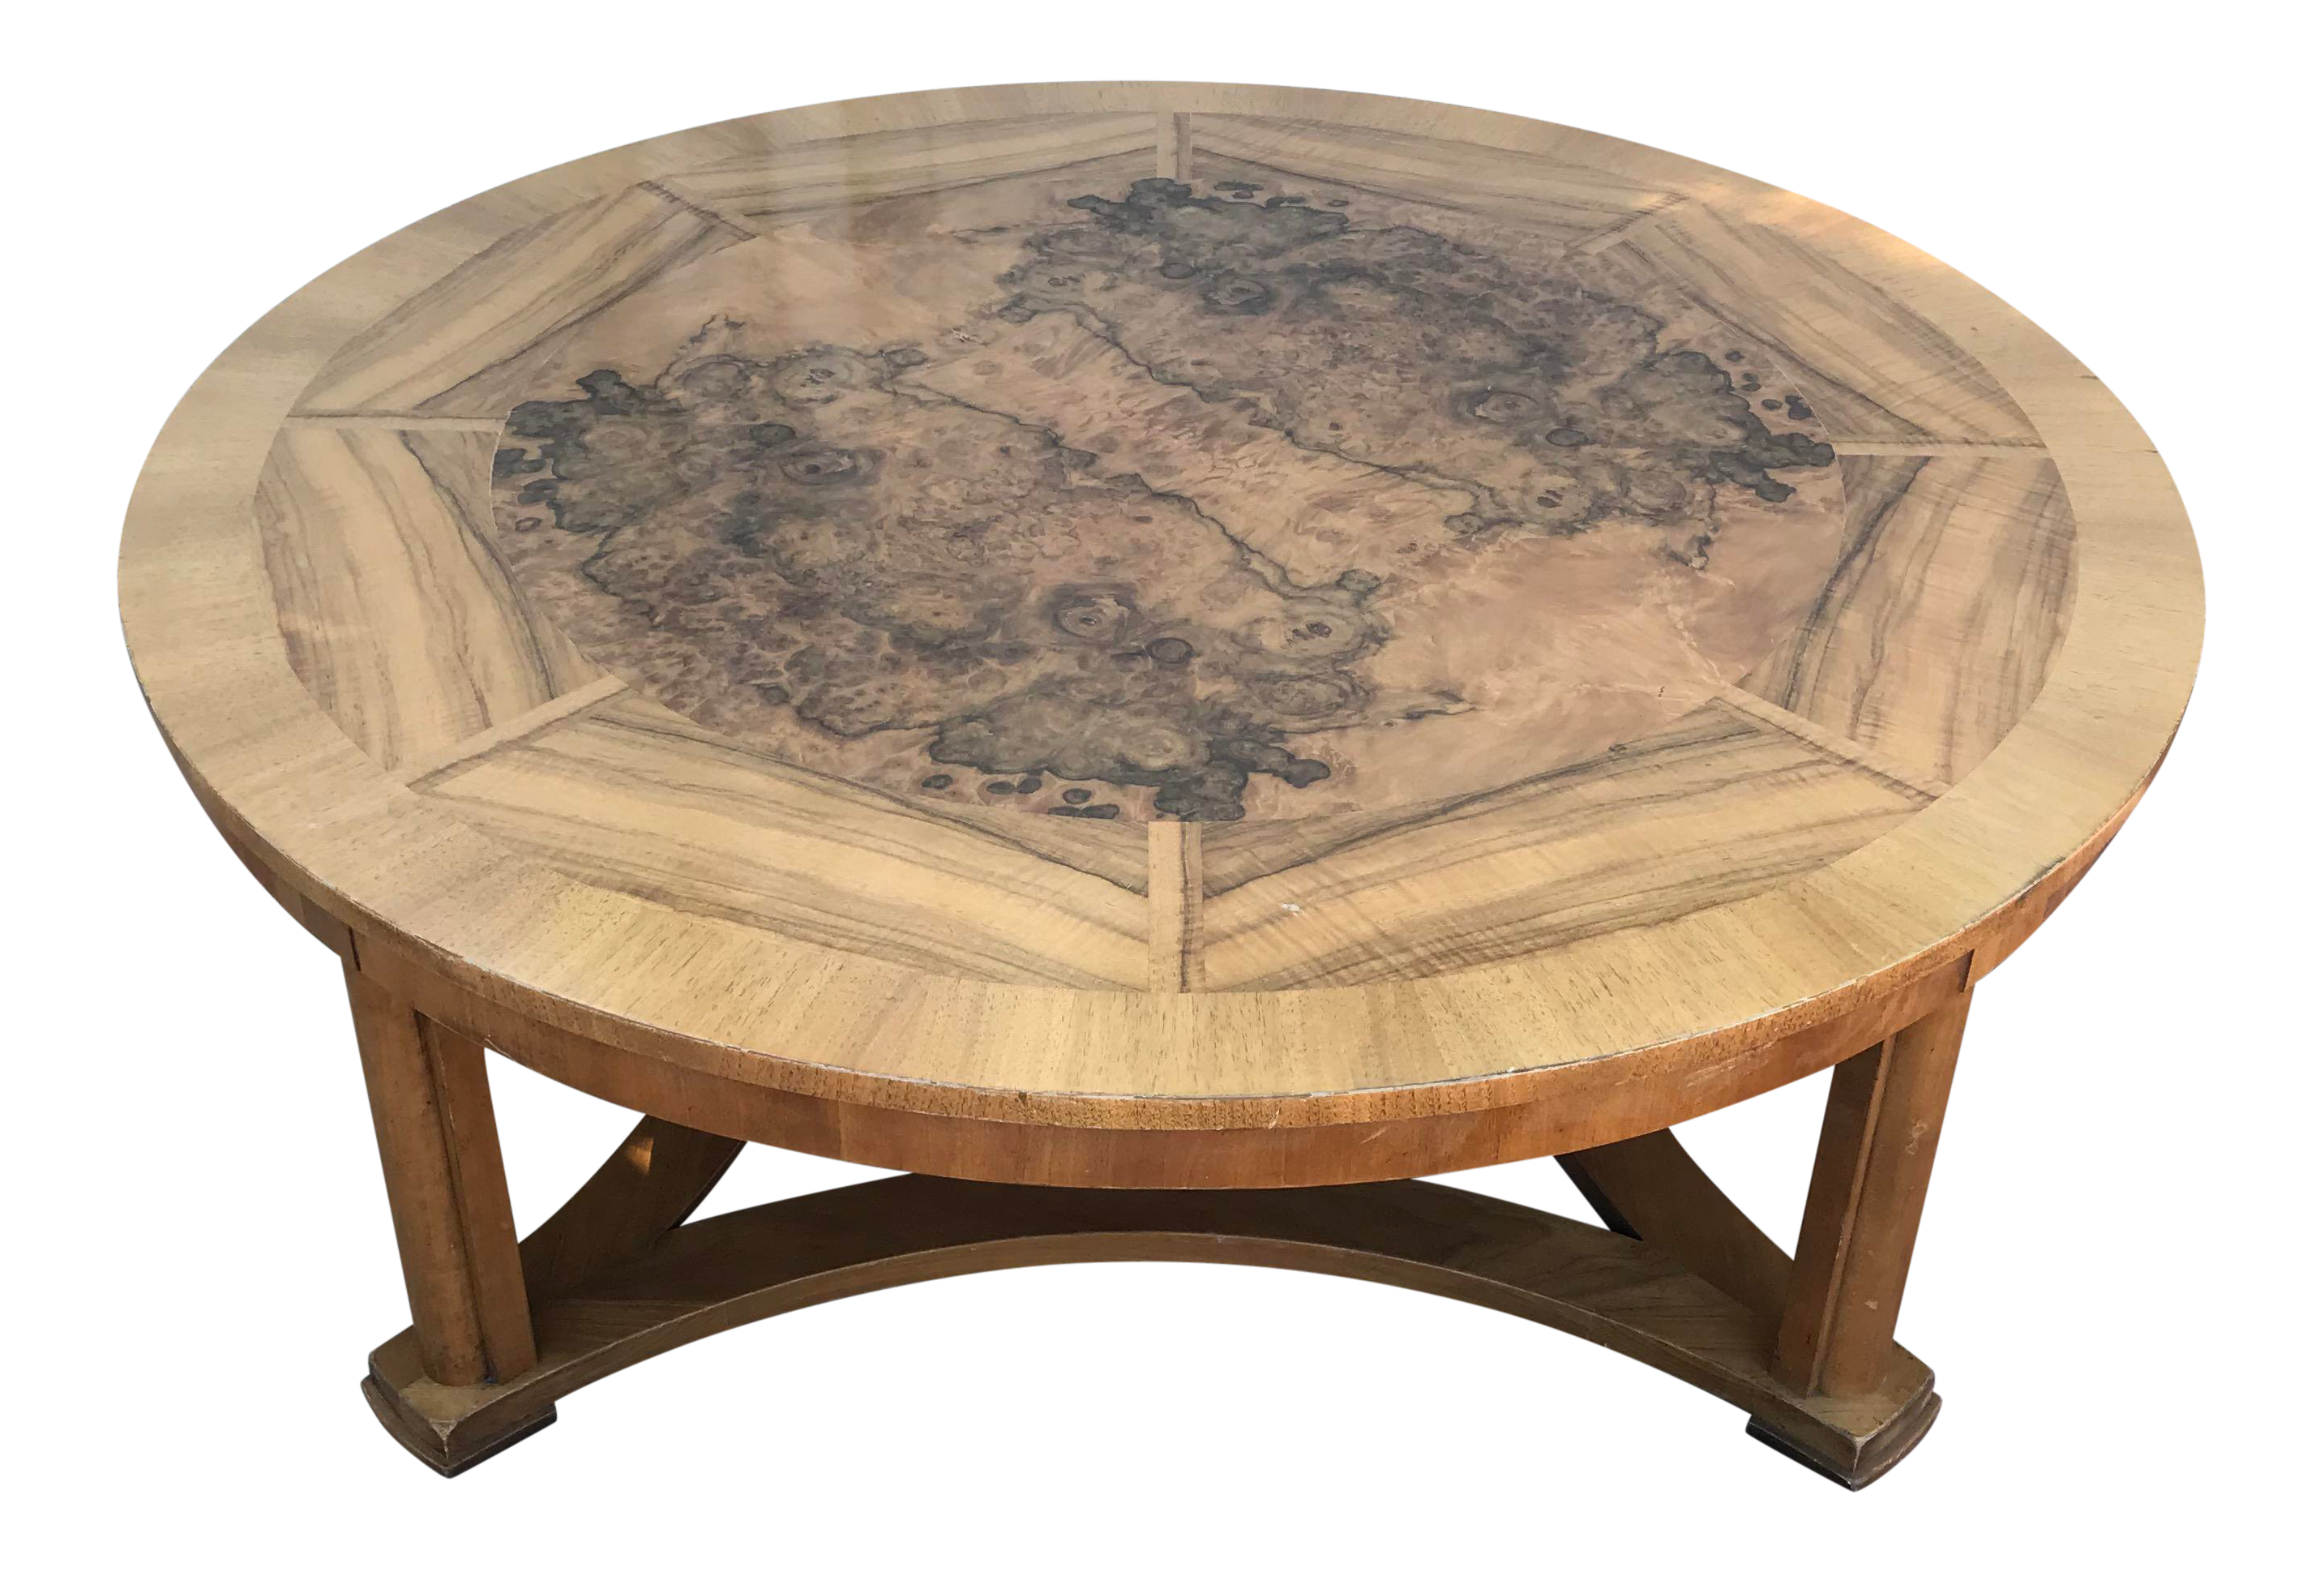 vintage round burl wood coffee table baker furniture chairish accent small kitchen chairs outdoor tablecloth square glass garden end target bedside lamps door stopper floor